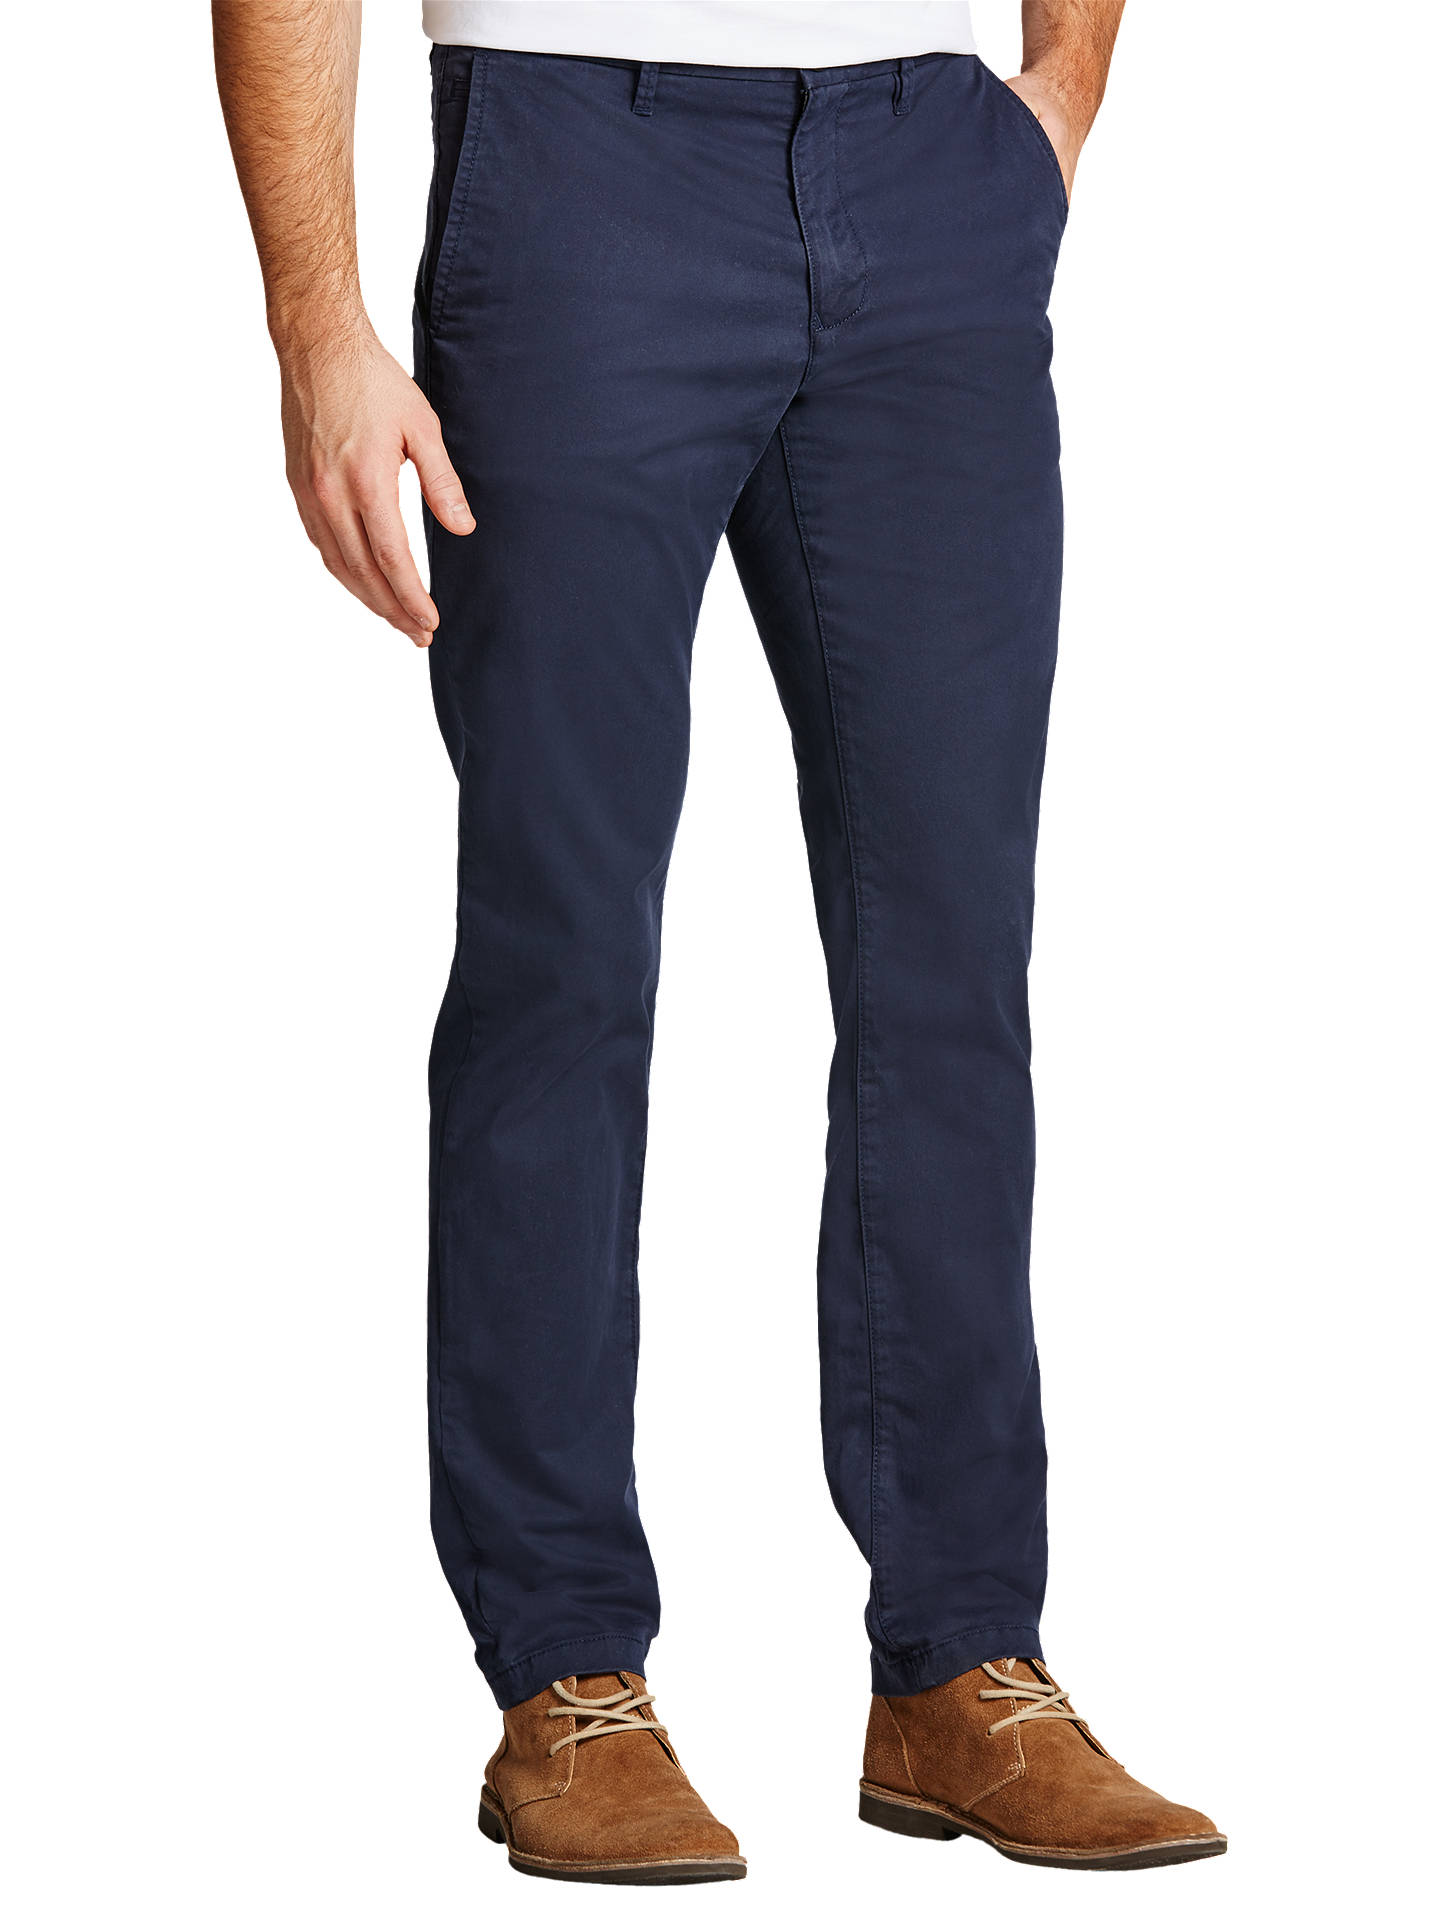 b766779e746 Buy Tommy Hilfiger Denton Organic Twill Chinos, Midnight, 38R Online at  johnlewis.com ...